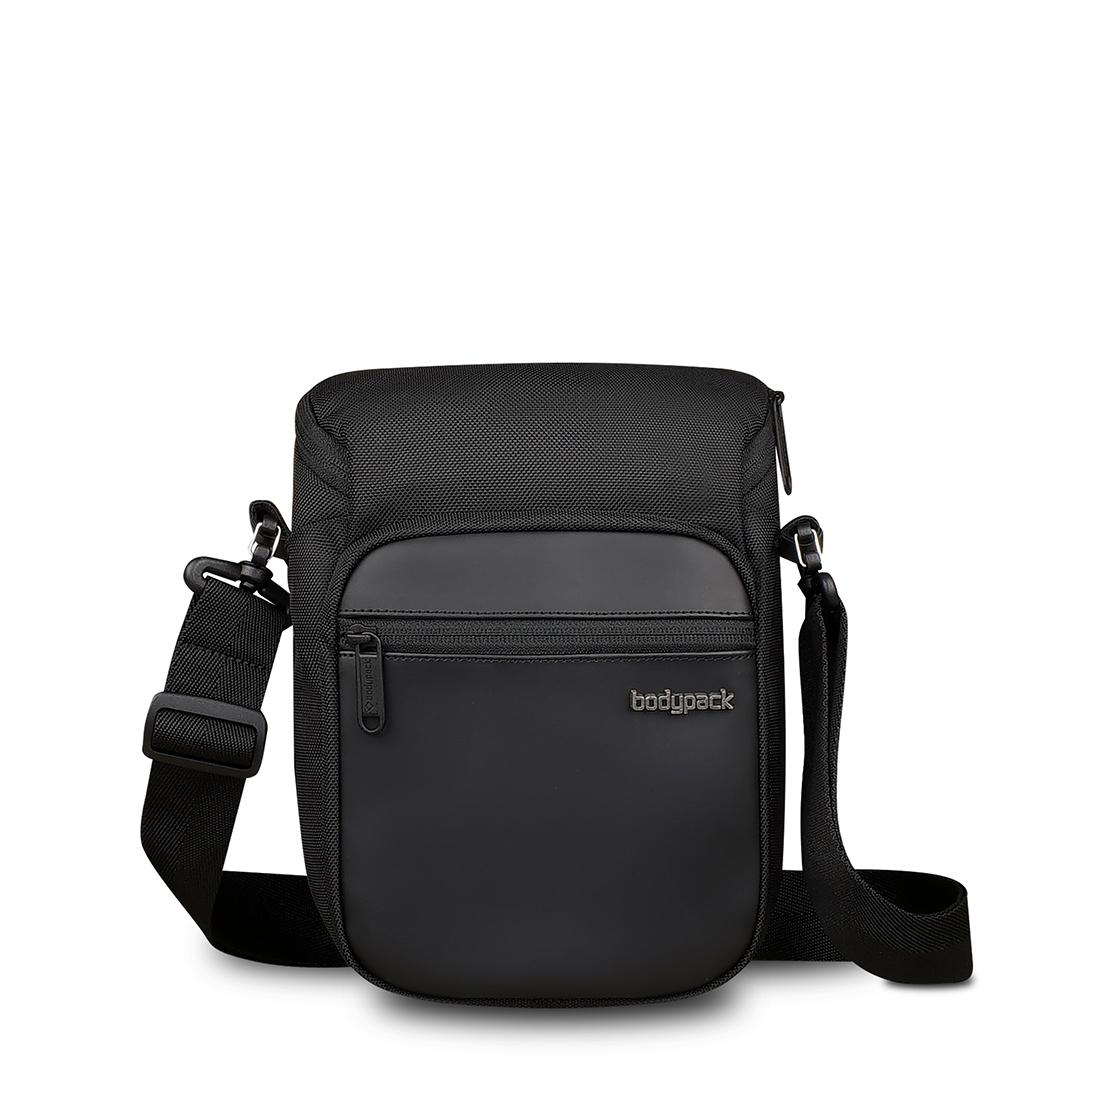 Bodypack Shuttle Travel Pouch - Black a225a1f174